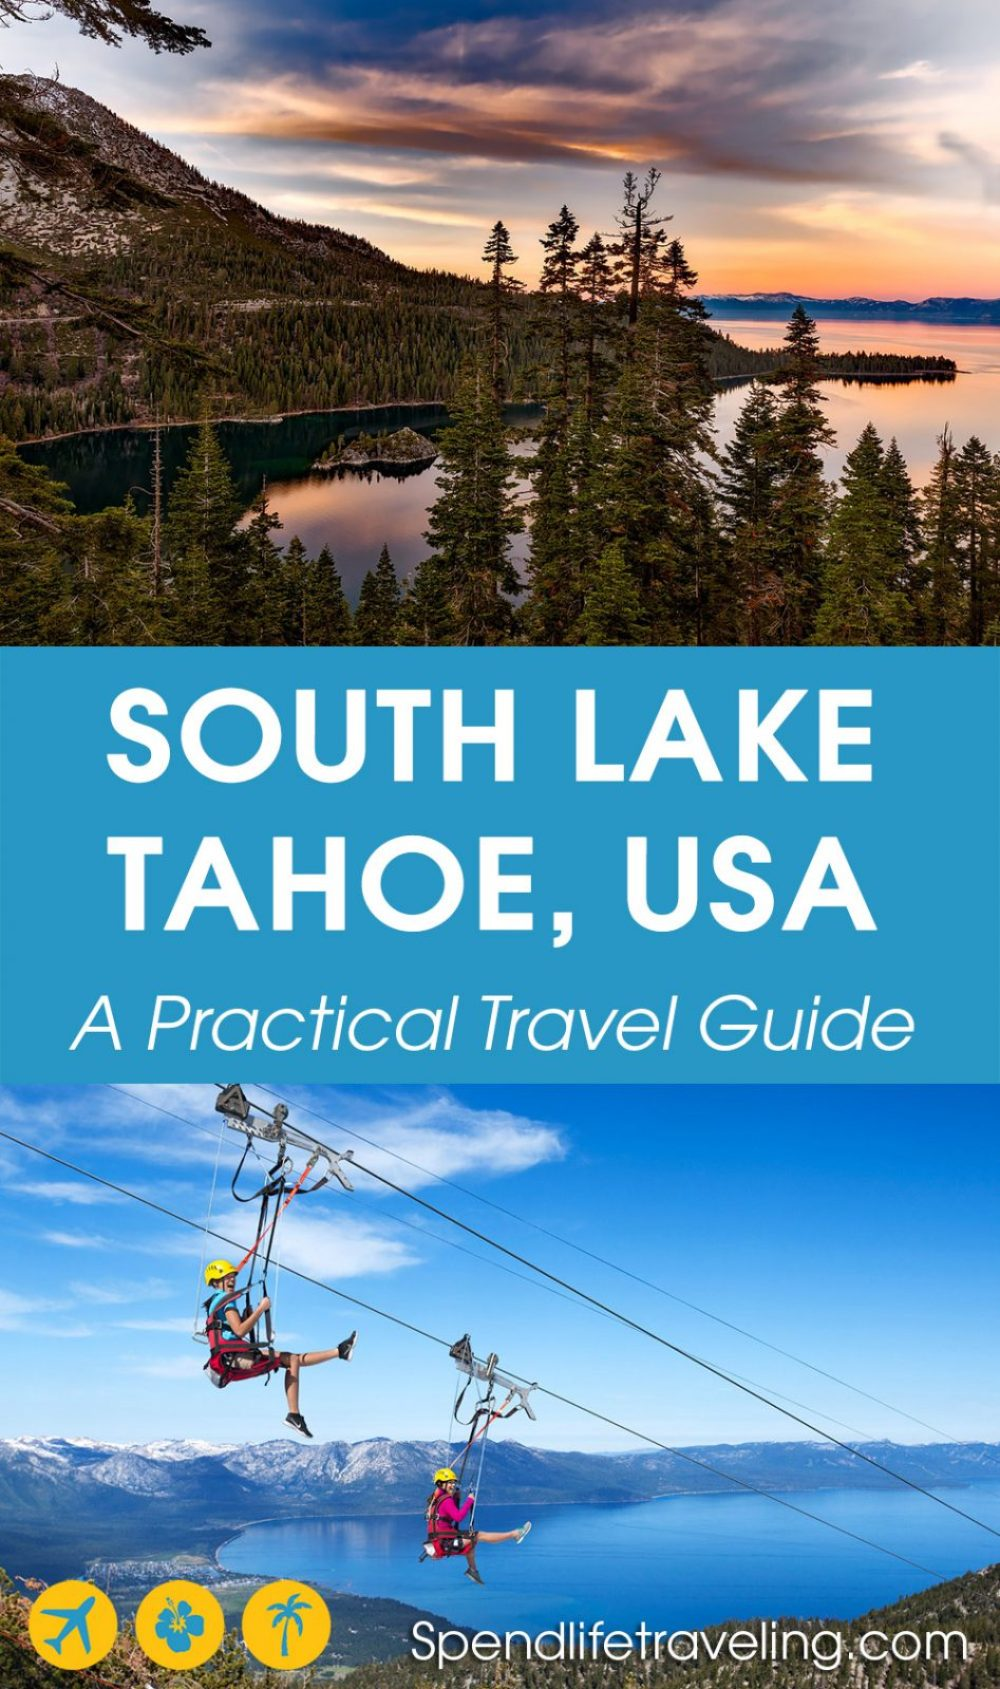 South Lake Tahoe is Lake Tahoe's most popular town. It is perfect for a short trip any time of year. Check out what to do, where to eat & drink and where to stay. #southlaketahoe #laketahoe #tahoe #travelguide #mountainlake